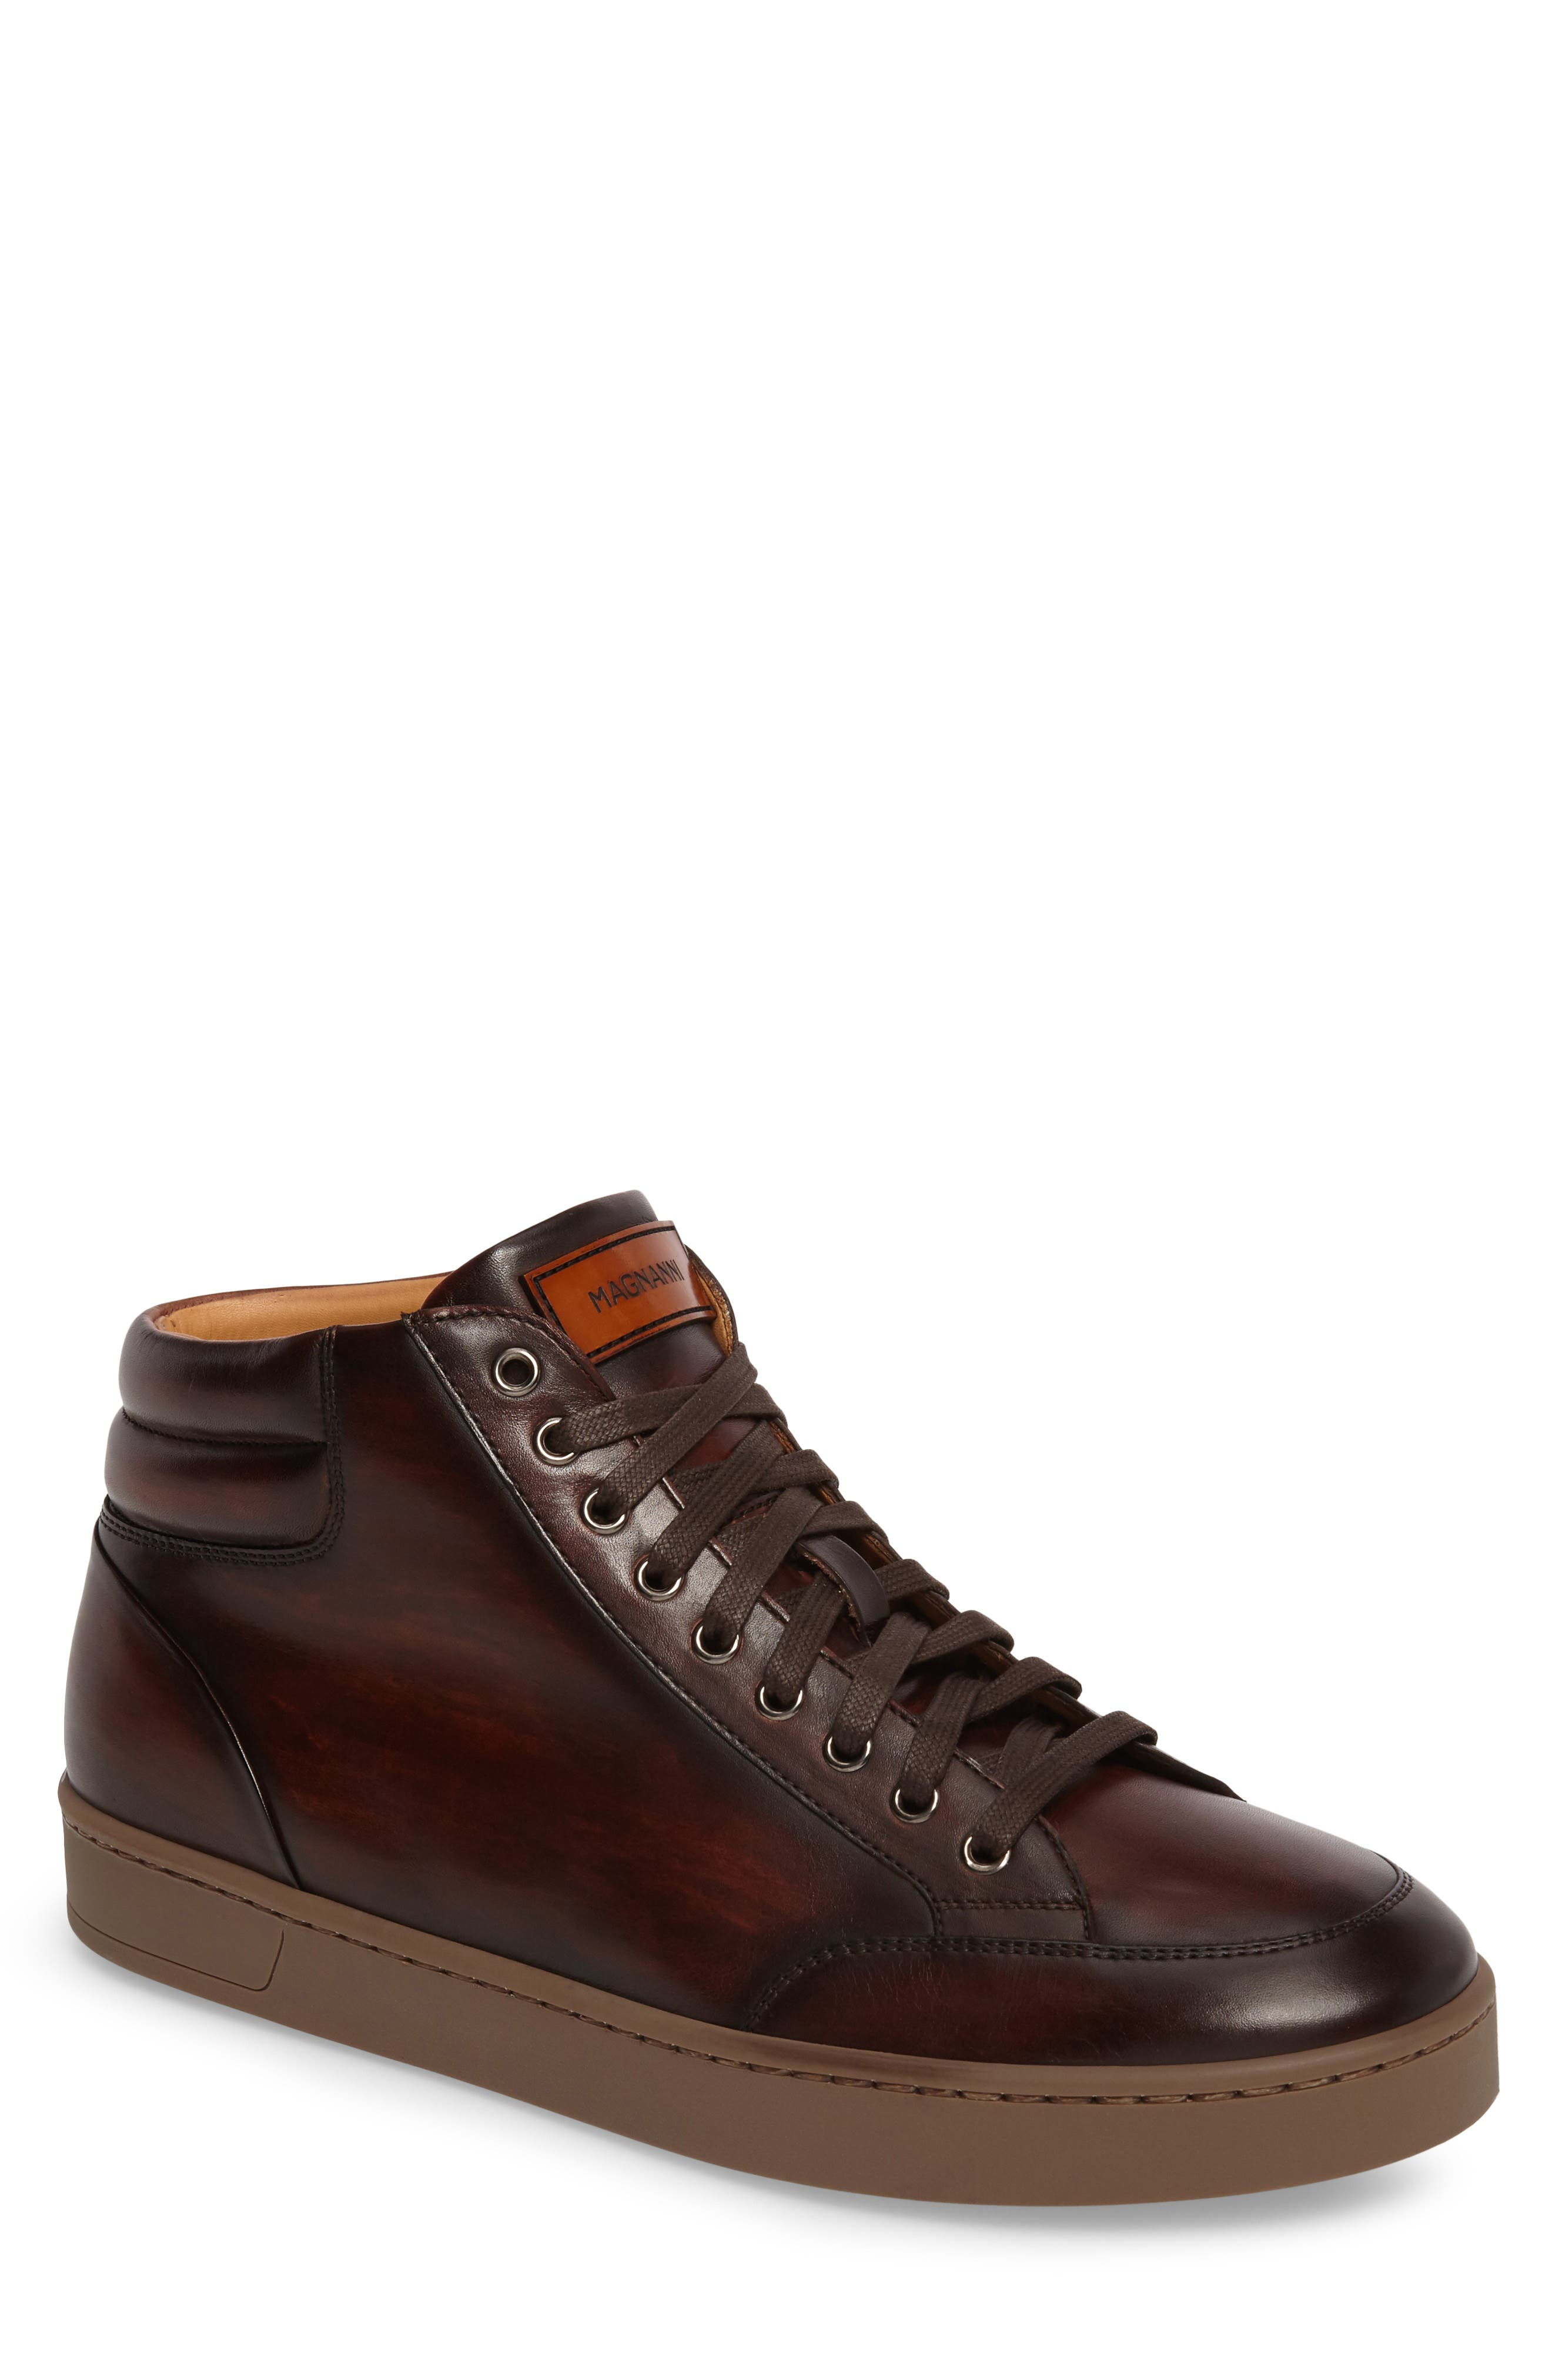 Carmel Sneaker,                         Main,                         color, Mid Brown Leather